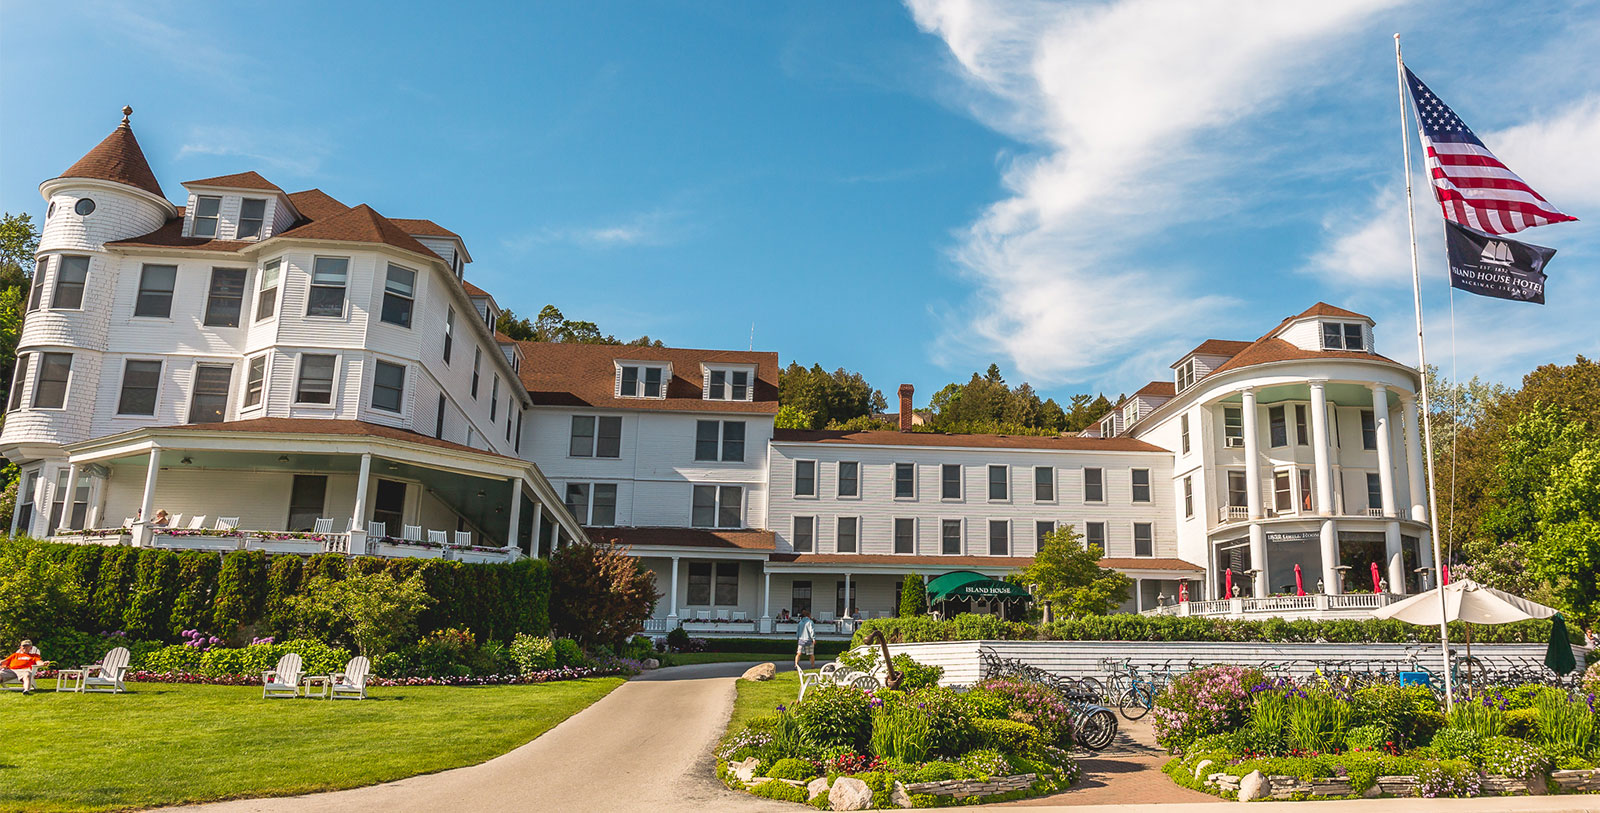 Image of Exterior and, Island House Hotel in Mackinac Island, Michigan, 1852Member of Historic Hotels of America, Overview